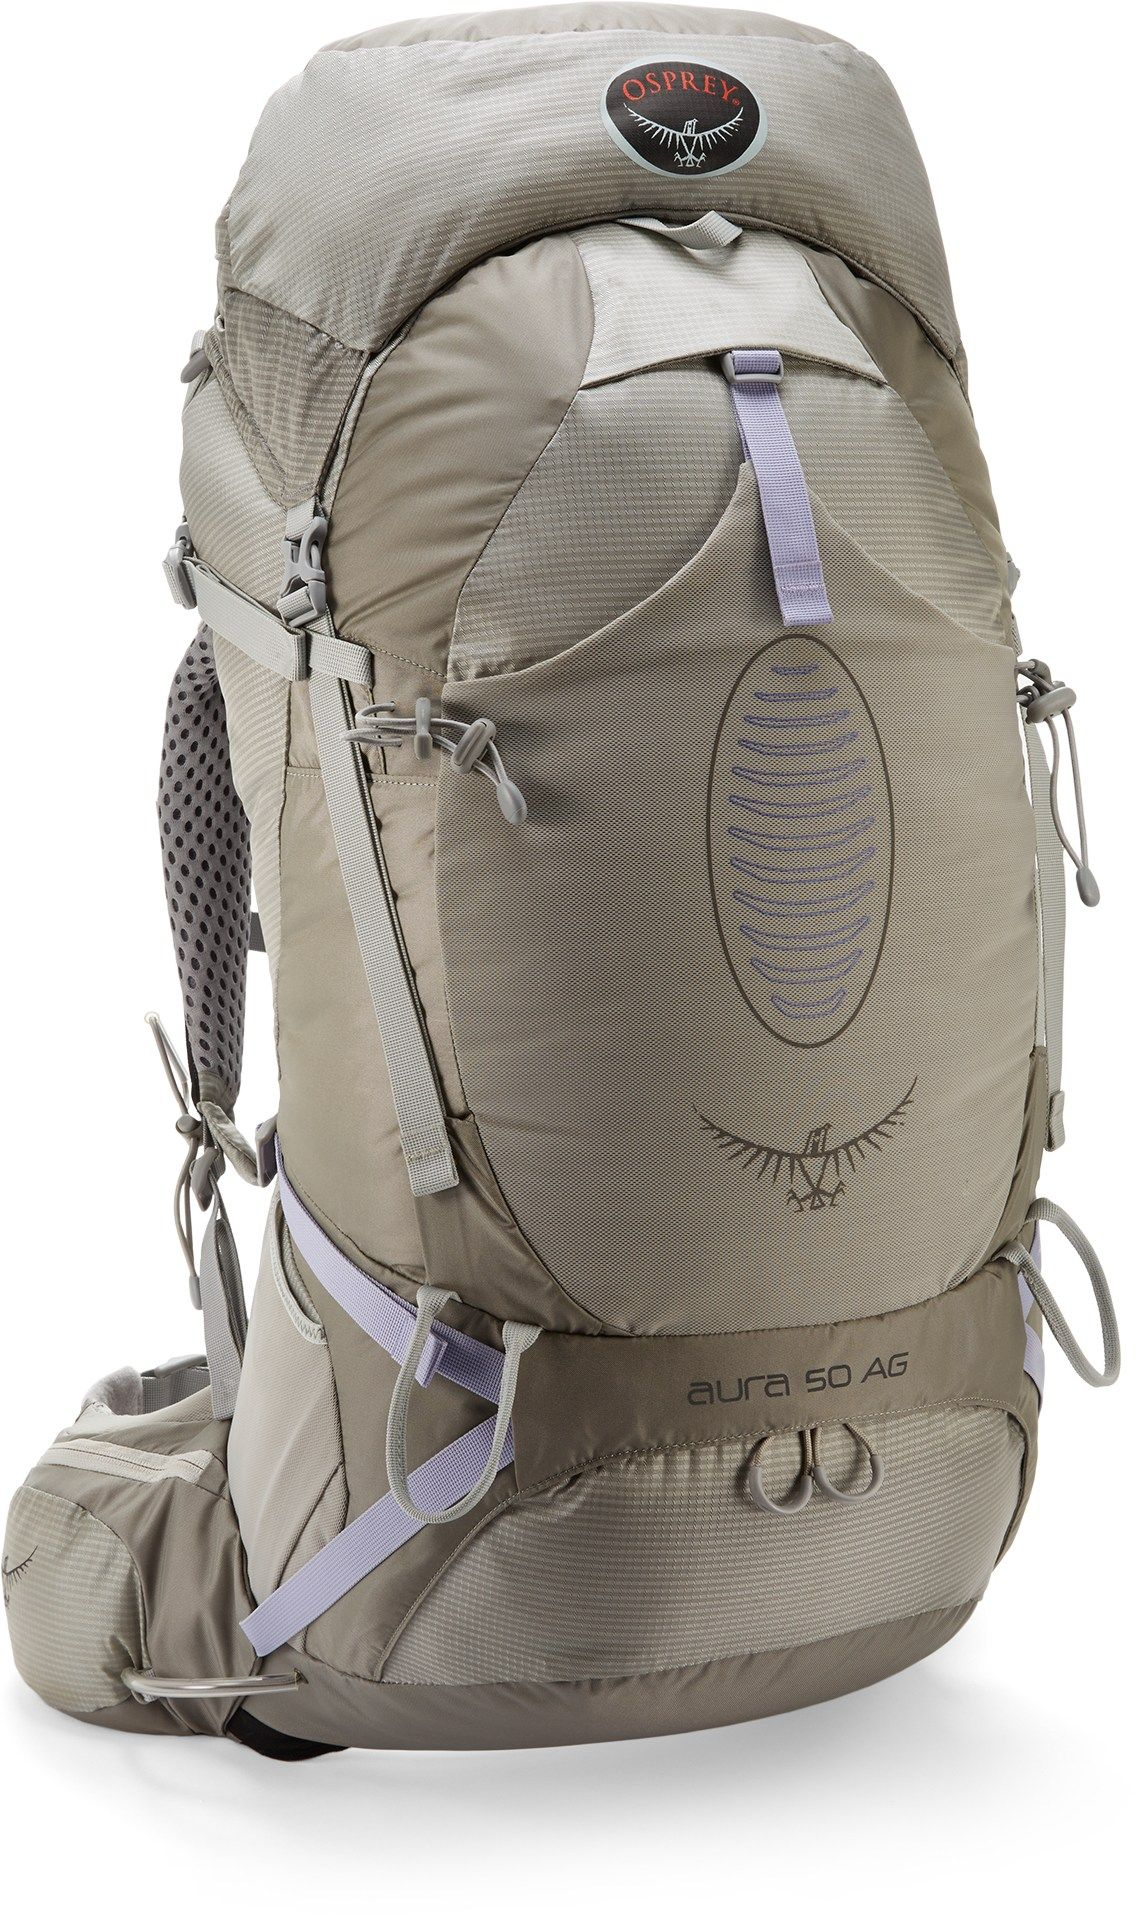 fb312c20445d My pack!! 2015 April-Osprey Aura 50 AG EX Pack - Women s - REI.com ...